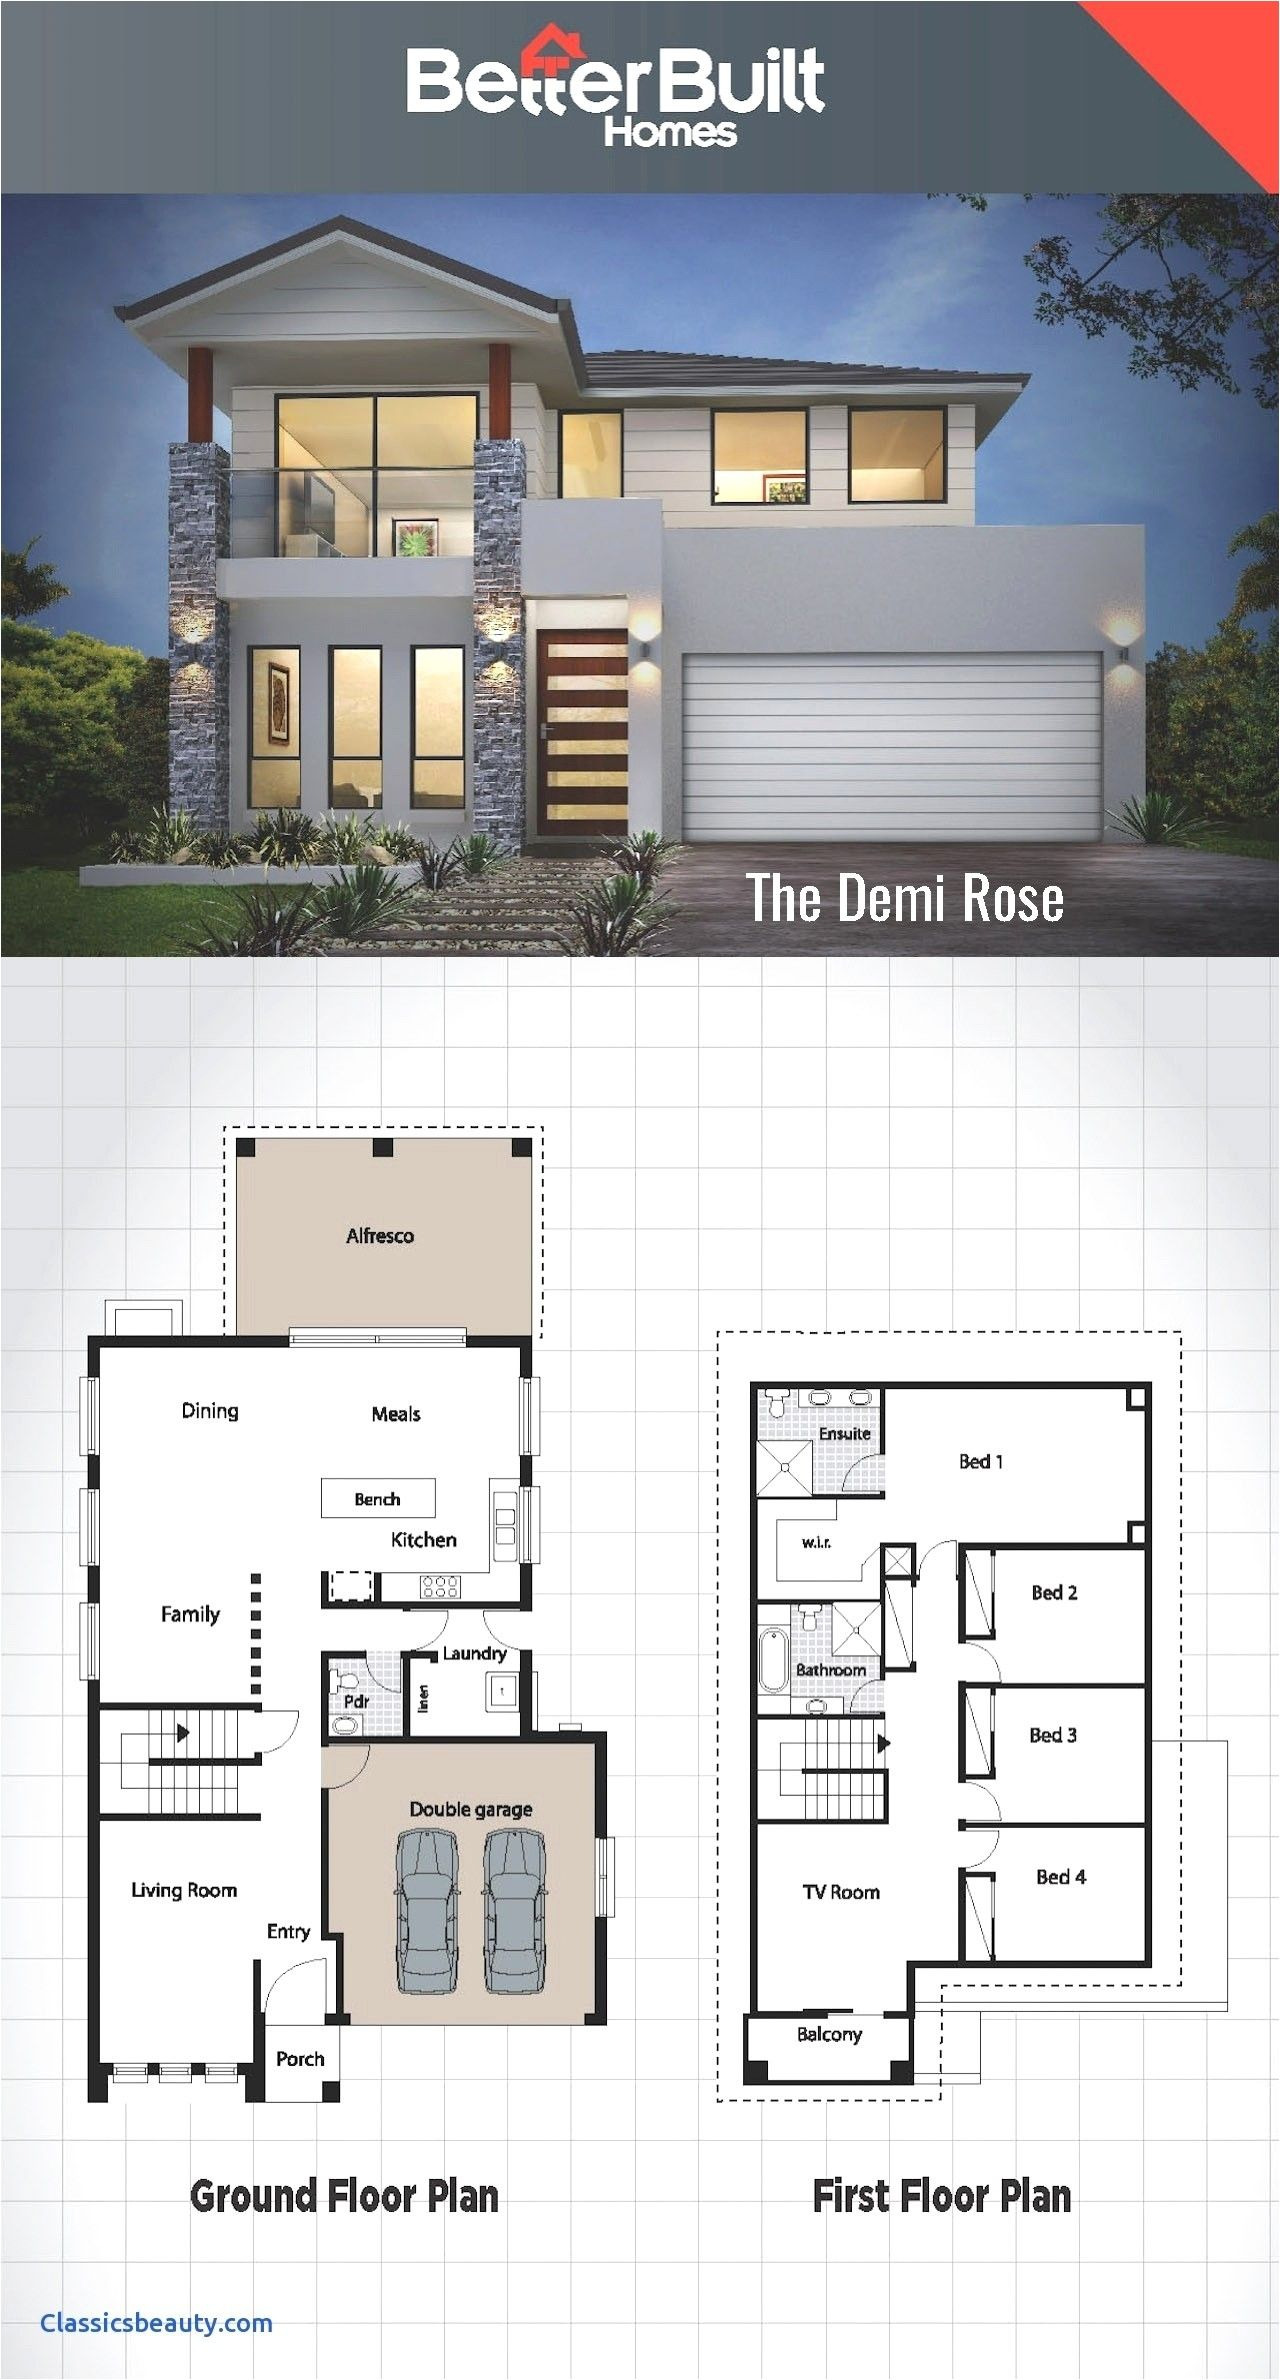 Building A House for Under 200k Fresh House Plans Under 200k to Build Philippines